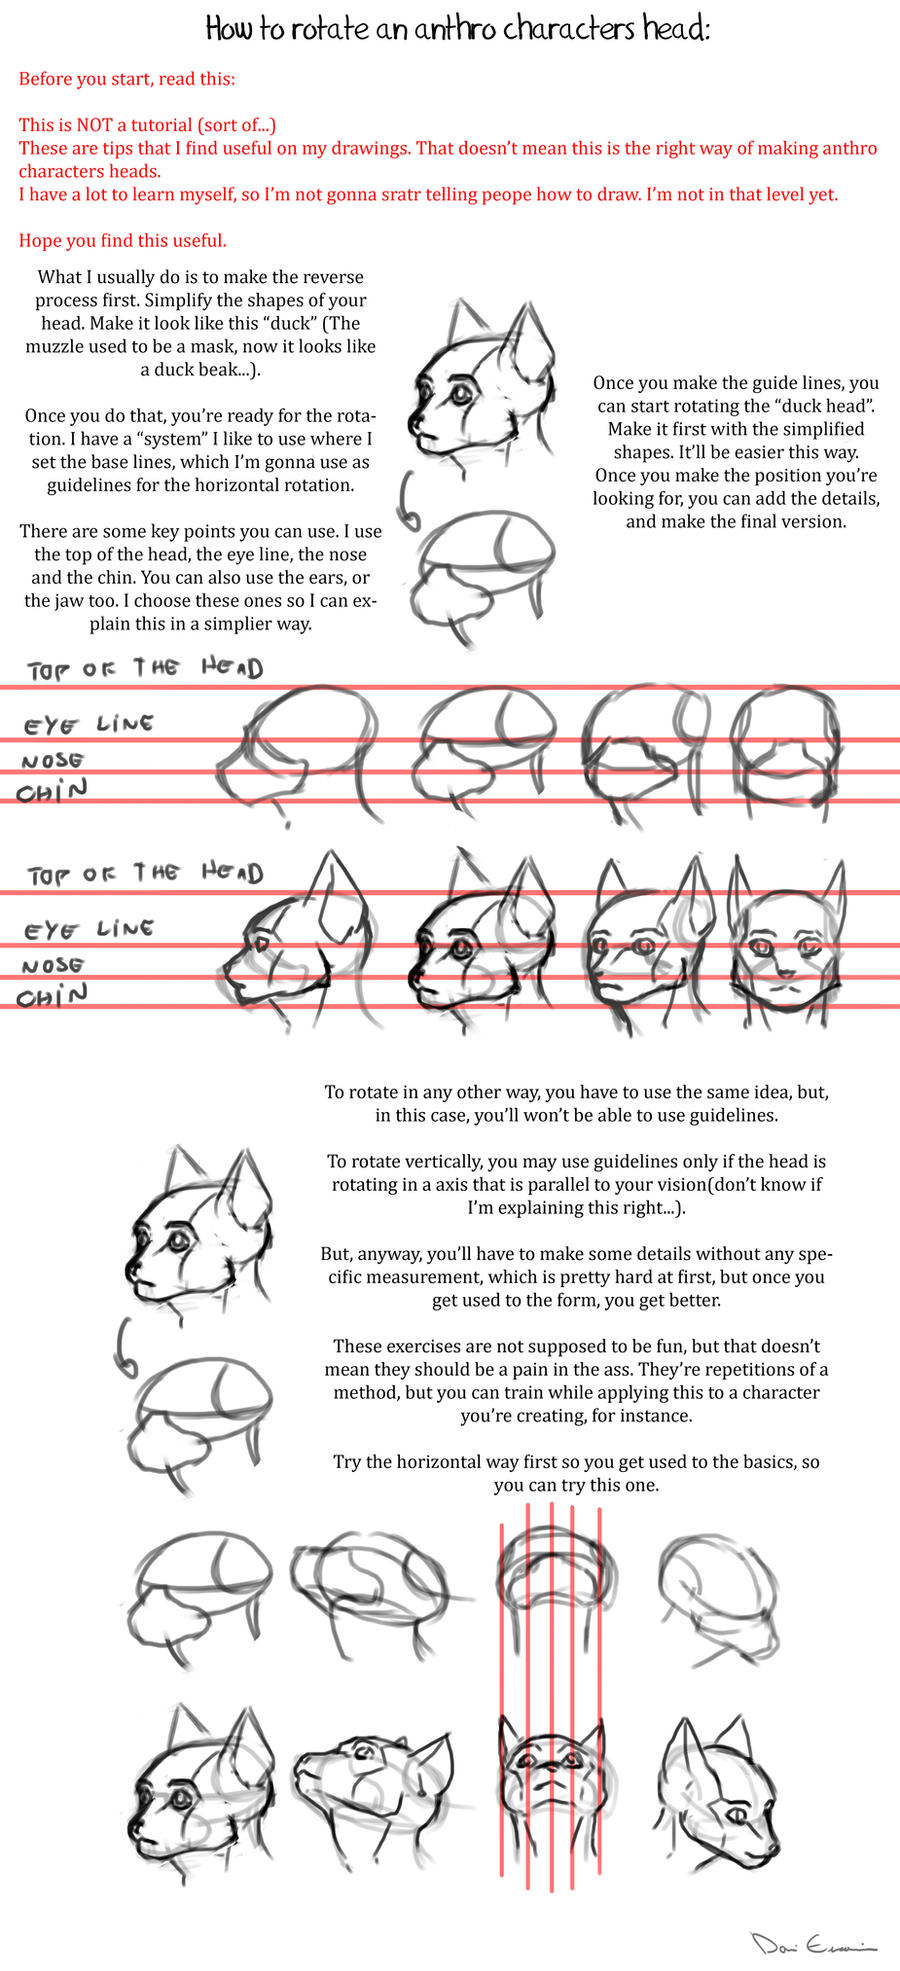 how to rotate anthro characters heads by davi-escorsin